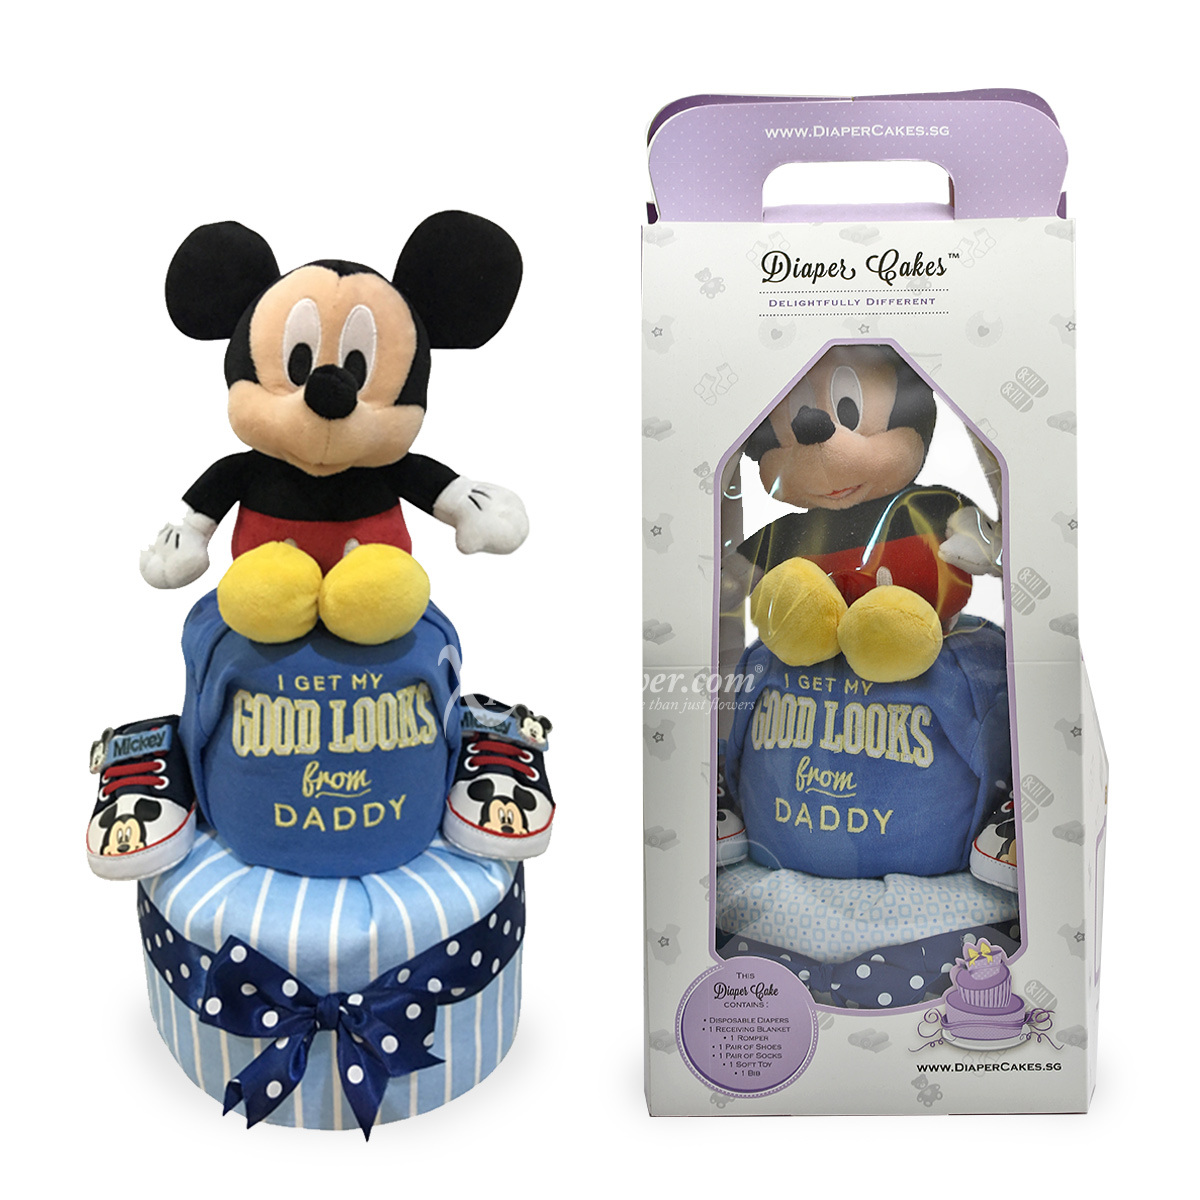 NB1726 2-Tier Mickey Diaper Cake